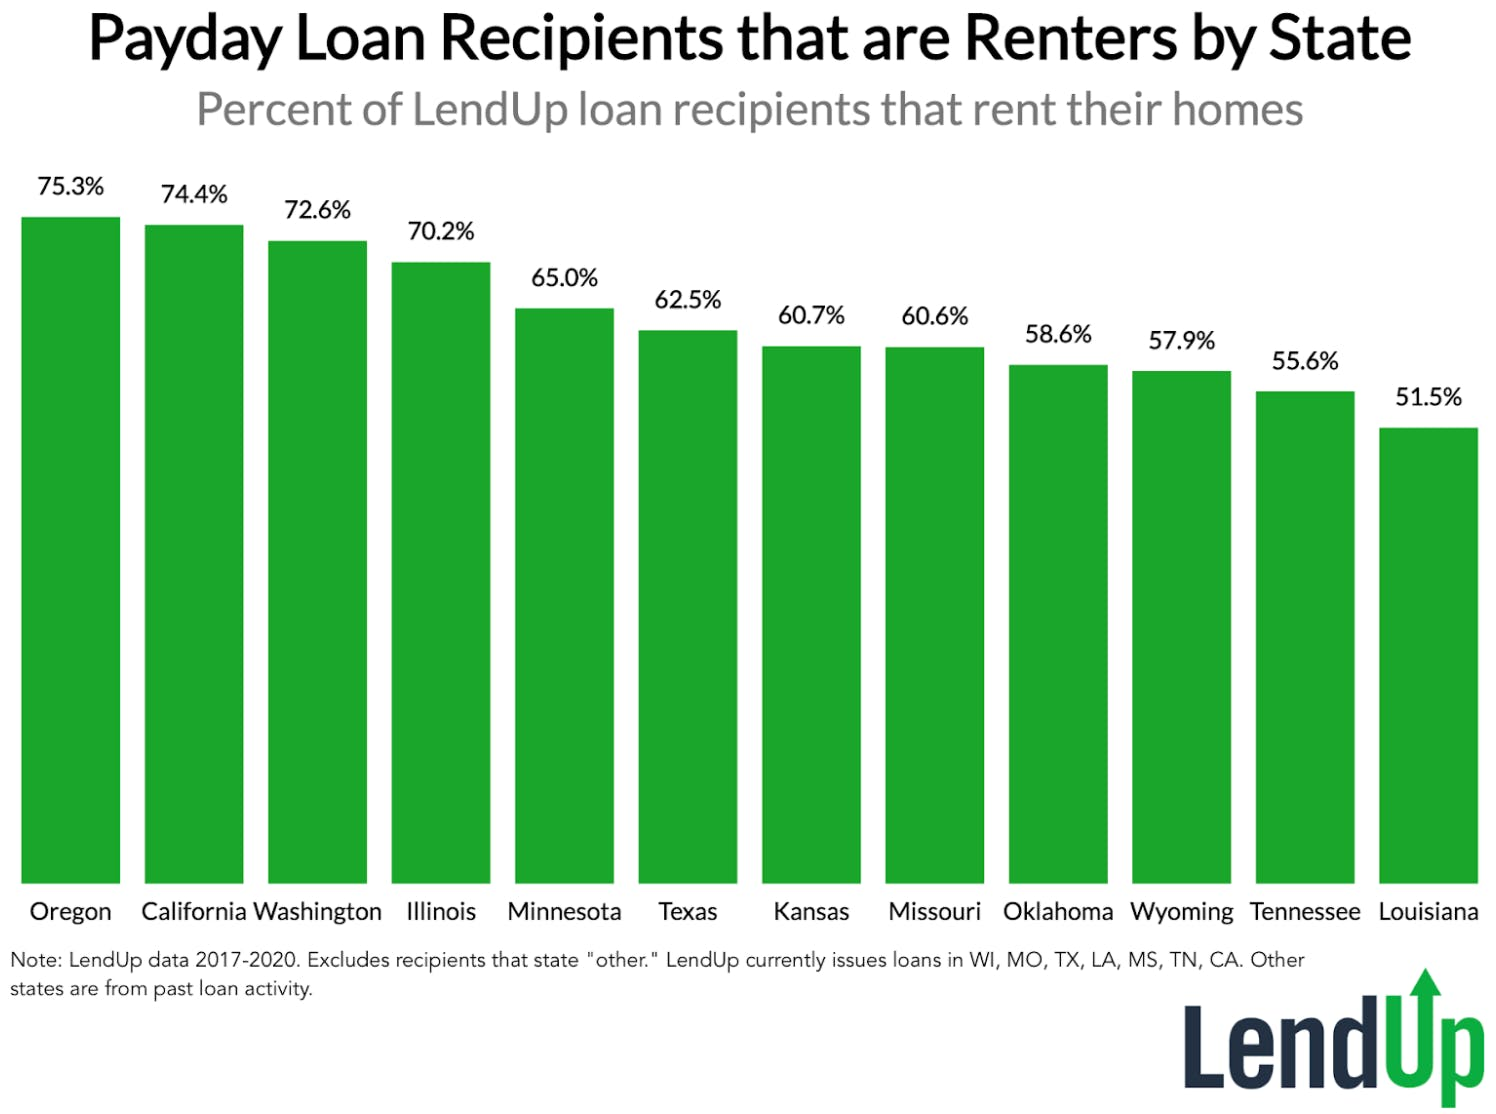 Payday Loan Recipients That are Renters by State